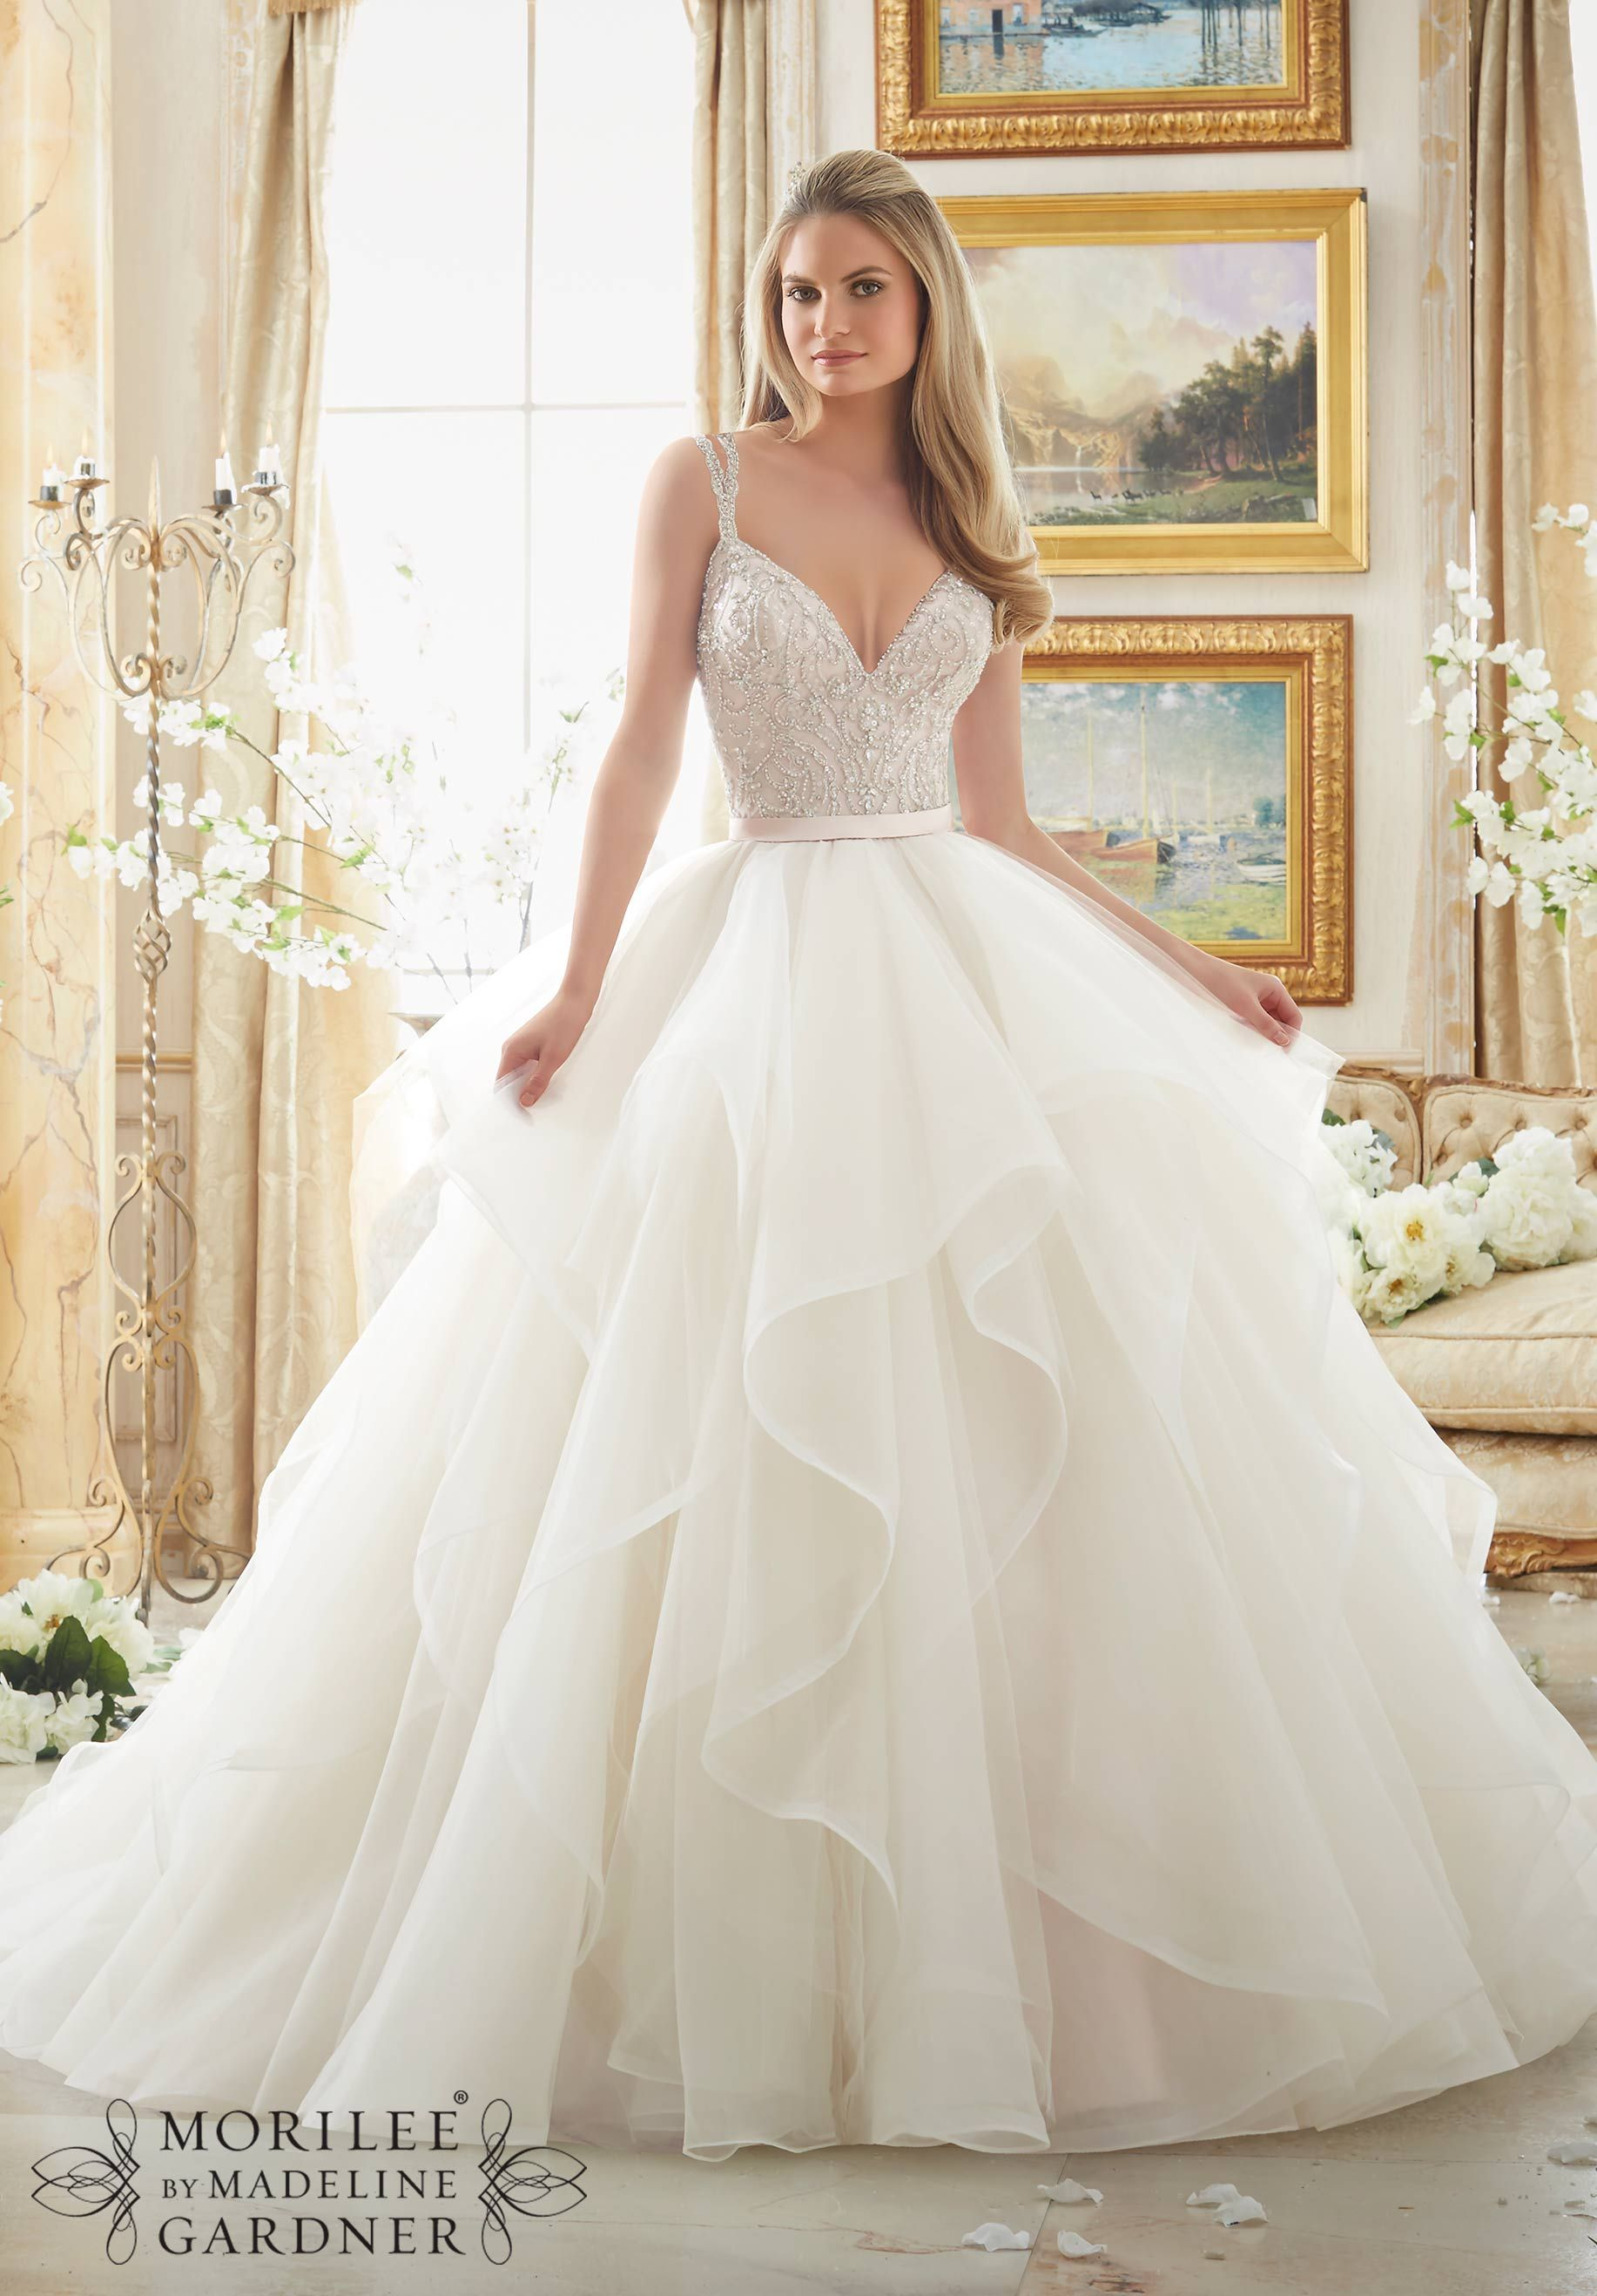 View Dress - Mori Lee Bridal FALL 2016 Collection: 2887 - Dazzling ...